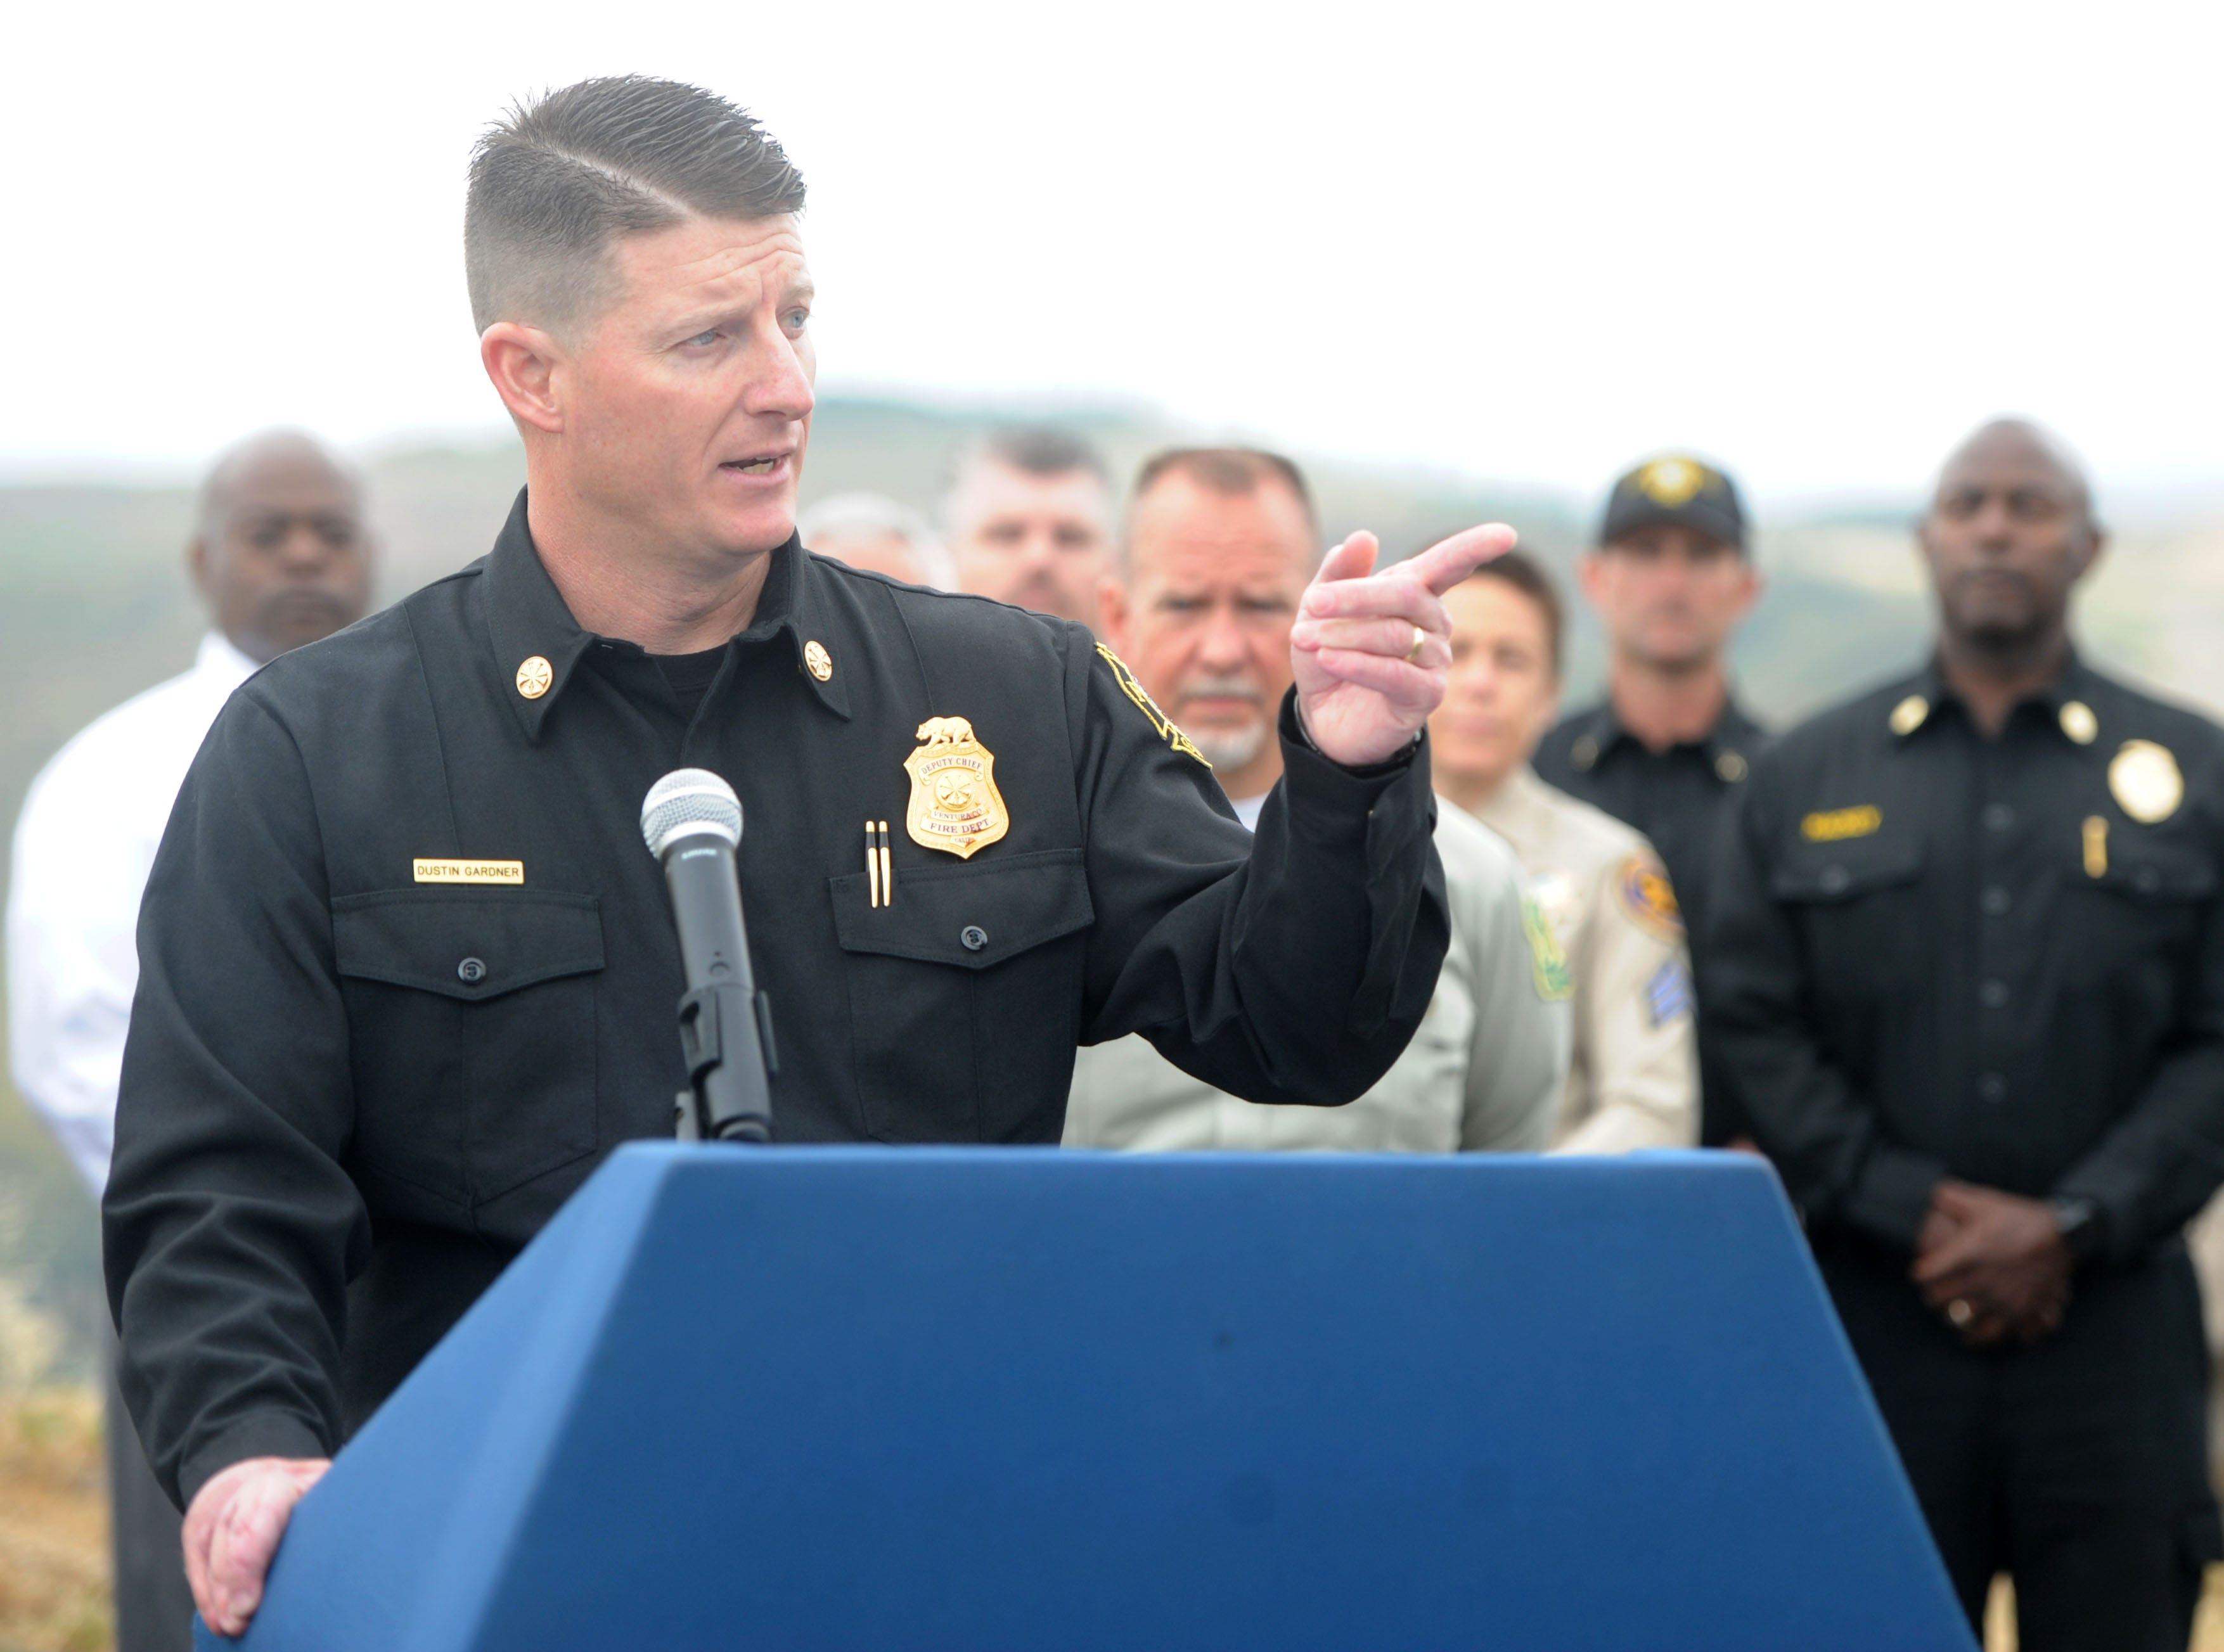 Deputy Chief Dustin Gardner of the Ventura County Fire Department speaks to the media about fire danger Wednesday at the Reagan Library in Simi Valley.